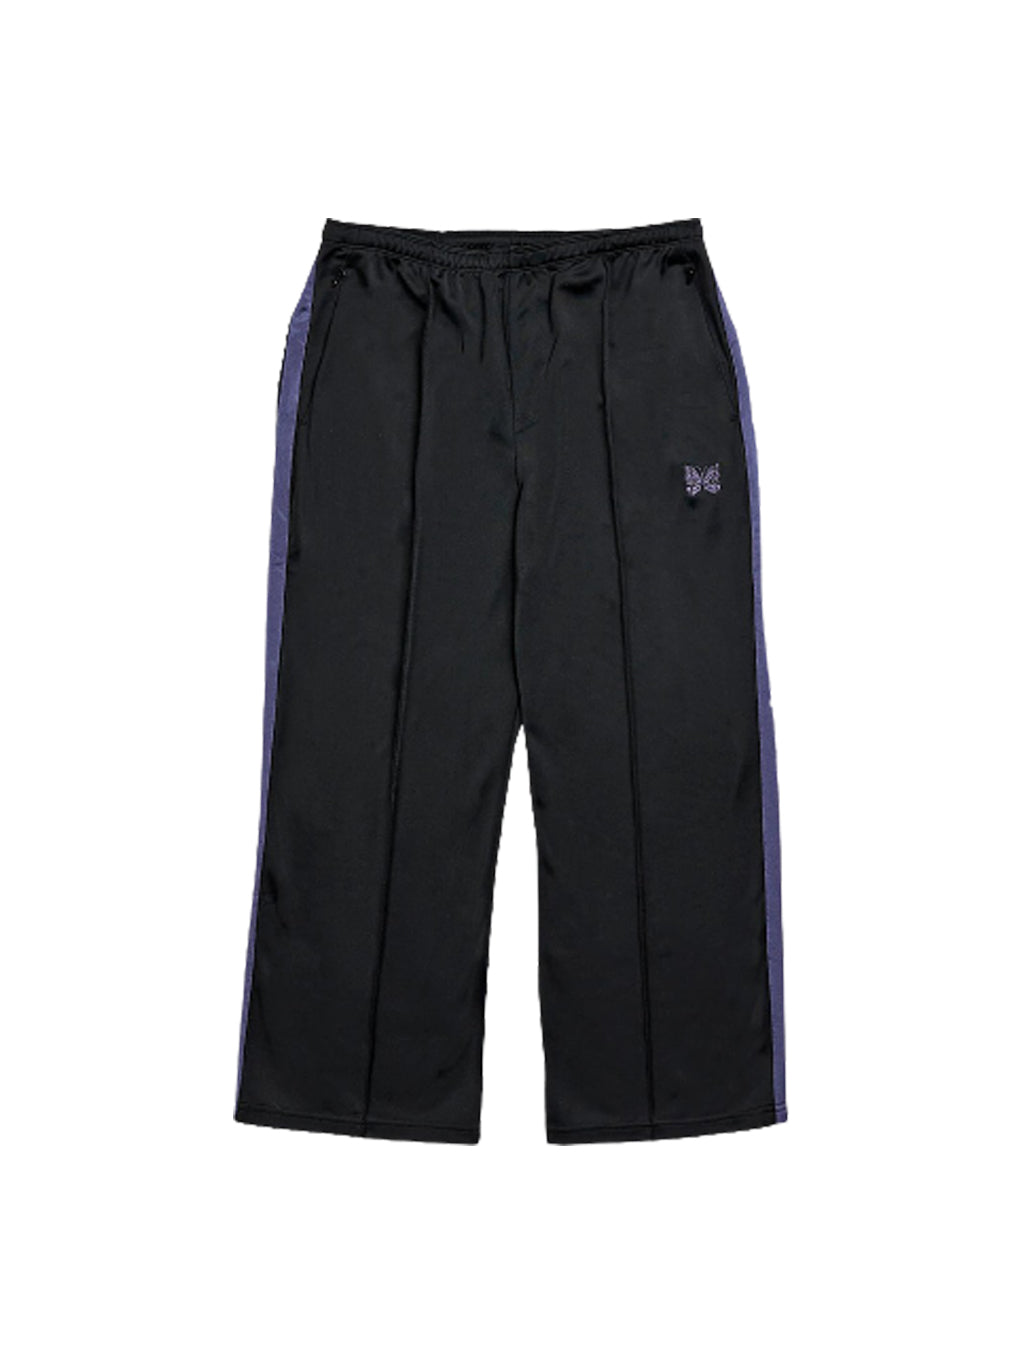 Black S.L. Seam Pocket Pants